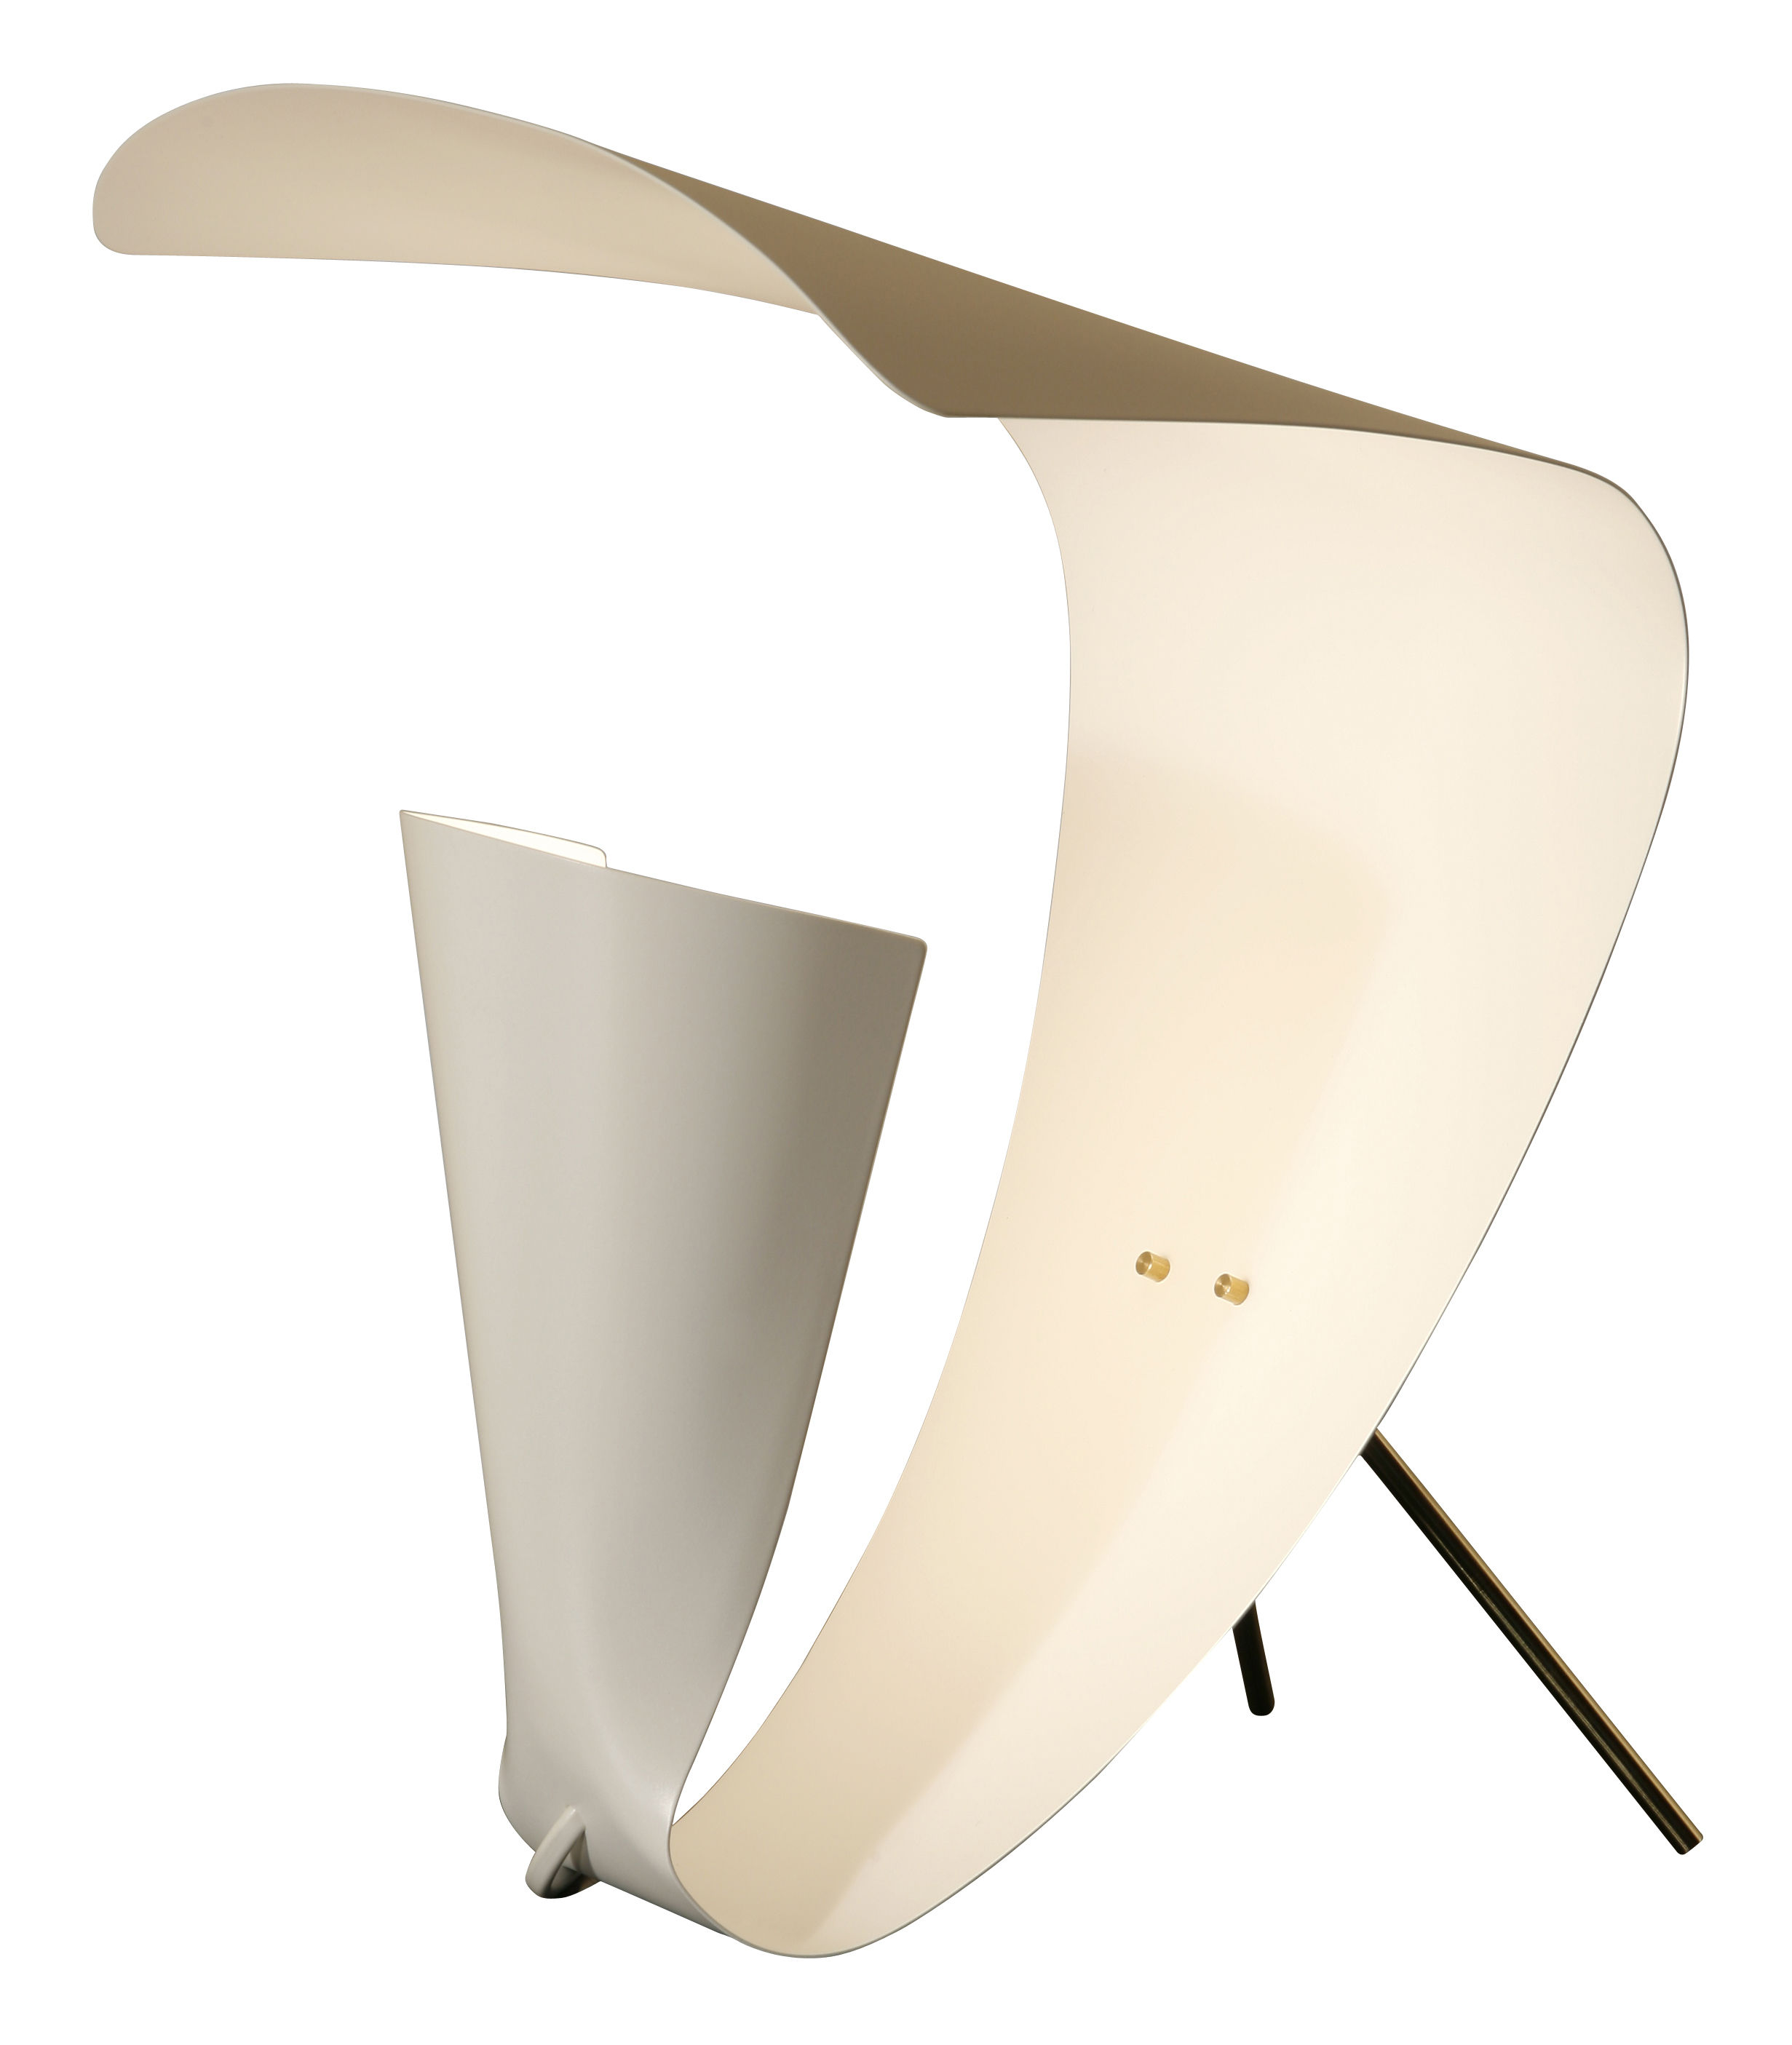 Lighting - Table Lamps - B201 Table lamp - 1953 by Michel Buffet - White - Brass, Lacquered tole